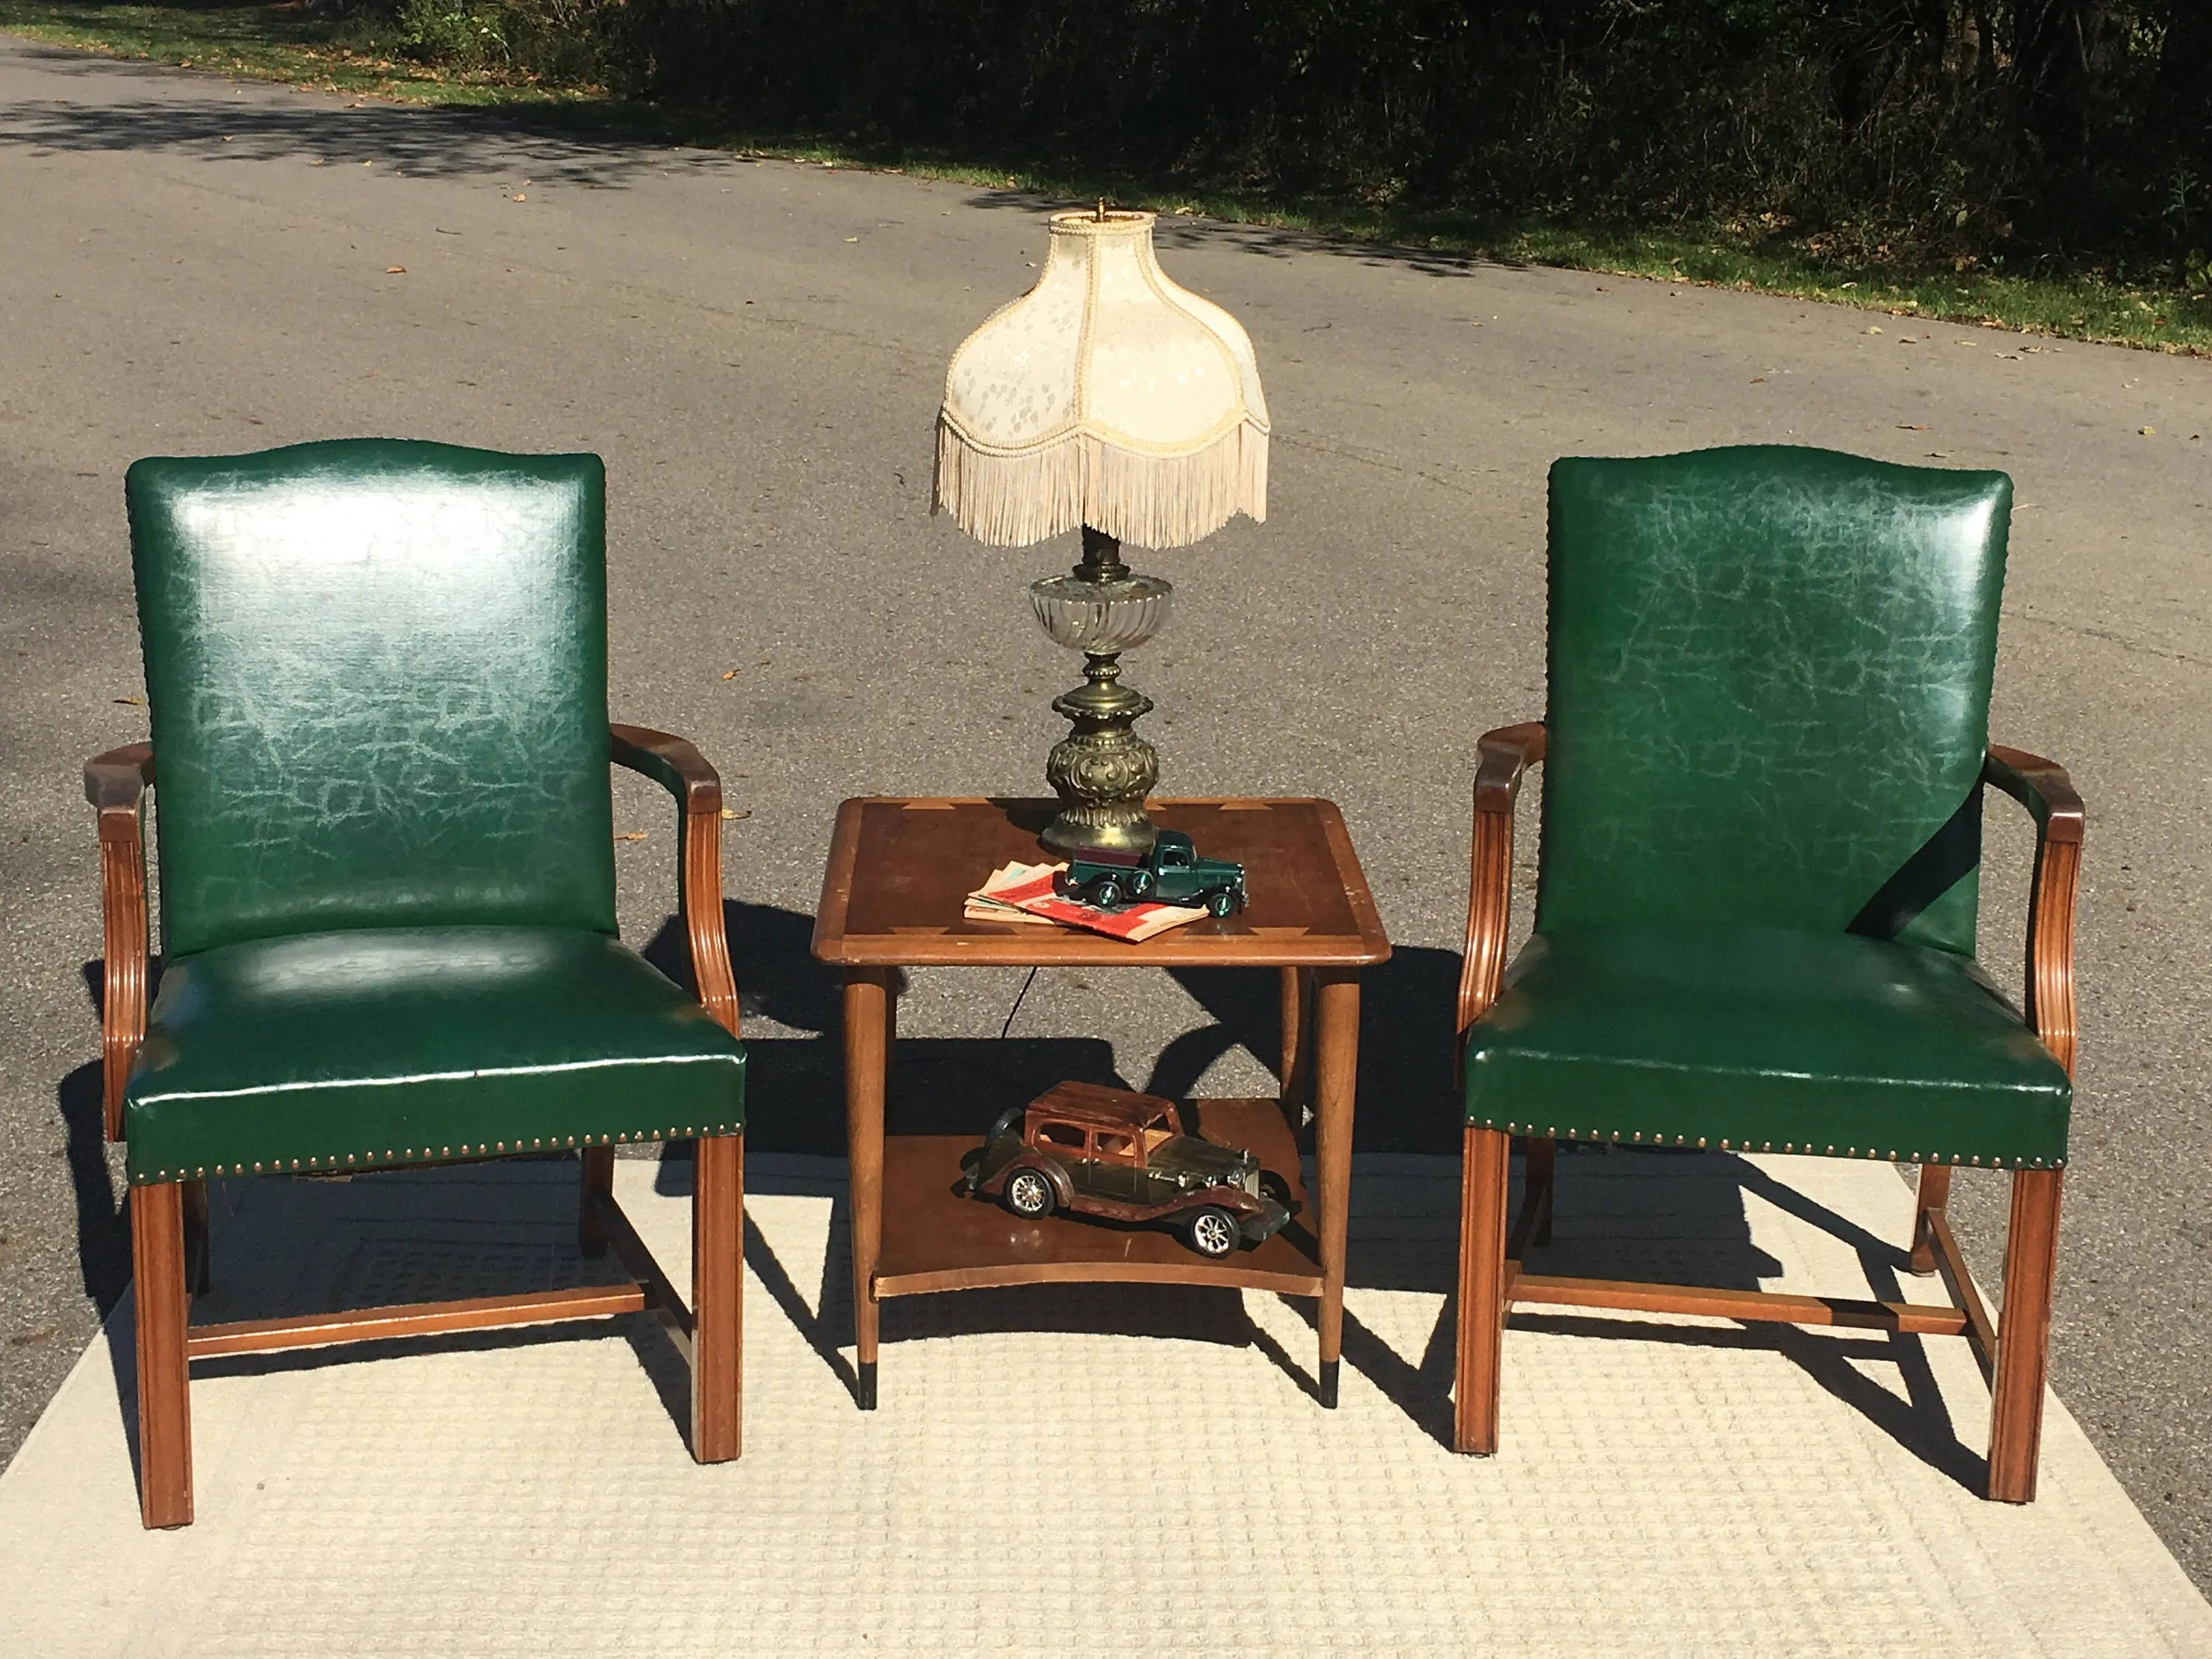 State Vintage Mid Century Walnut Lear Chairs B L Marble Chair Decorative Green Lear Accent Chairs Vintage Mid Century Walnut Lear Chairs B L Marble Chair Co furniture Leather Chair Mid Century